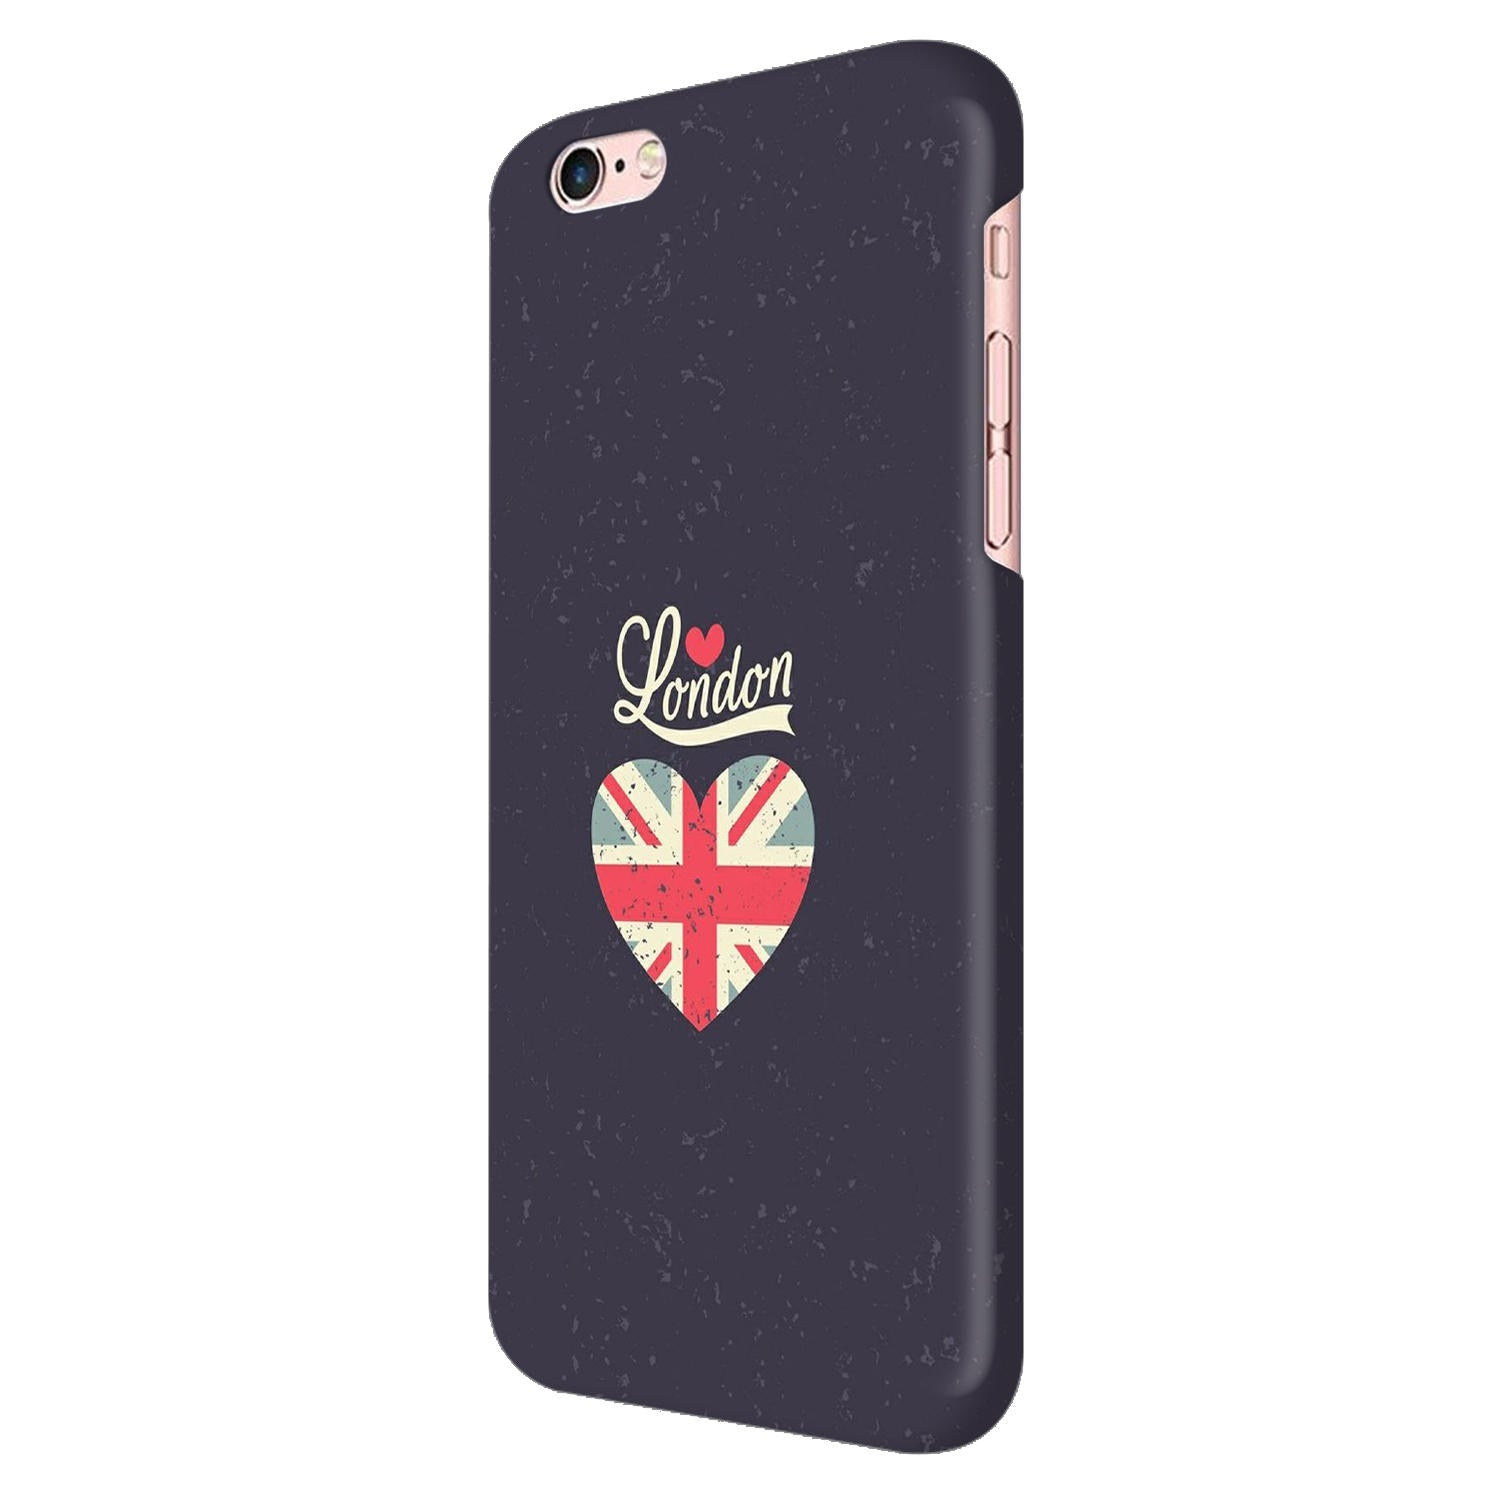 I Love London Typography Art For Artist iPhone 6 Mobile Cover Case - MADANYU